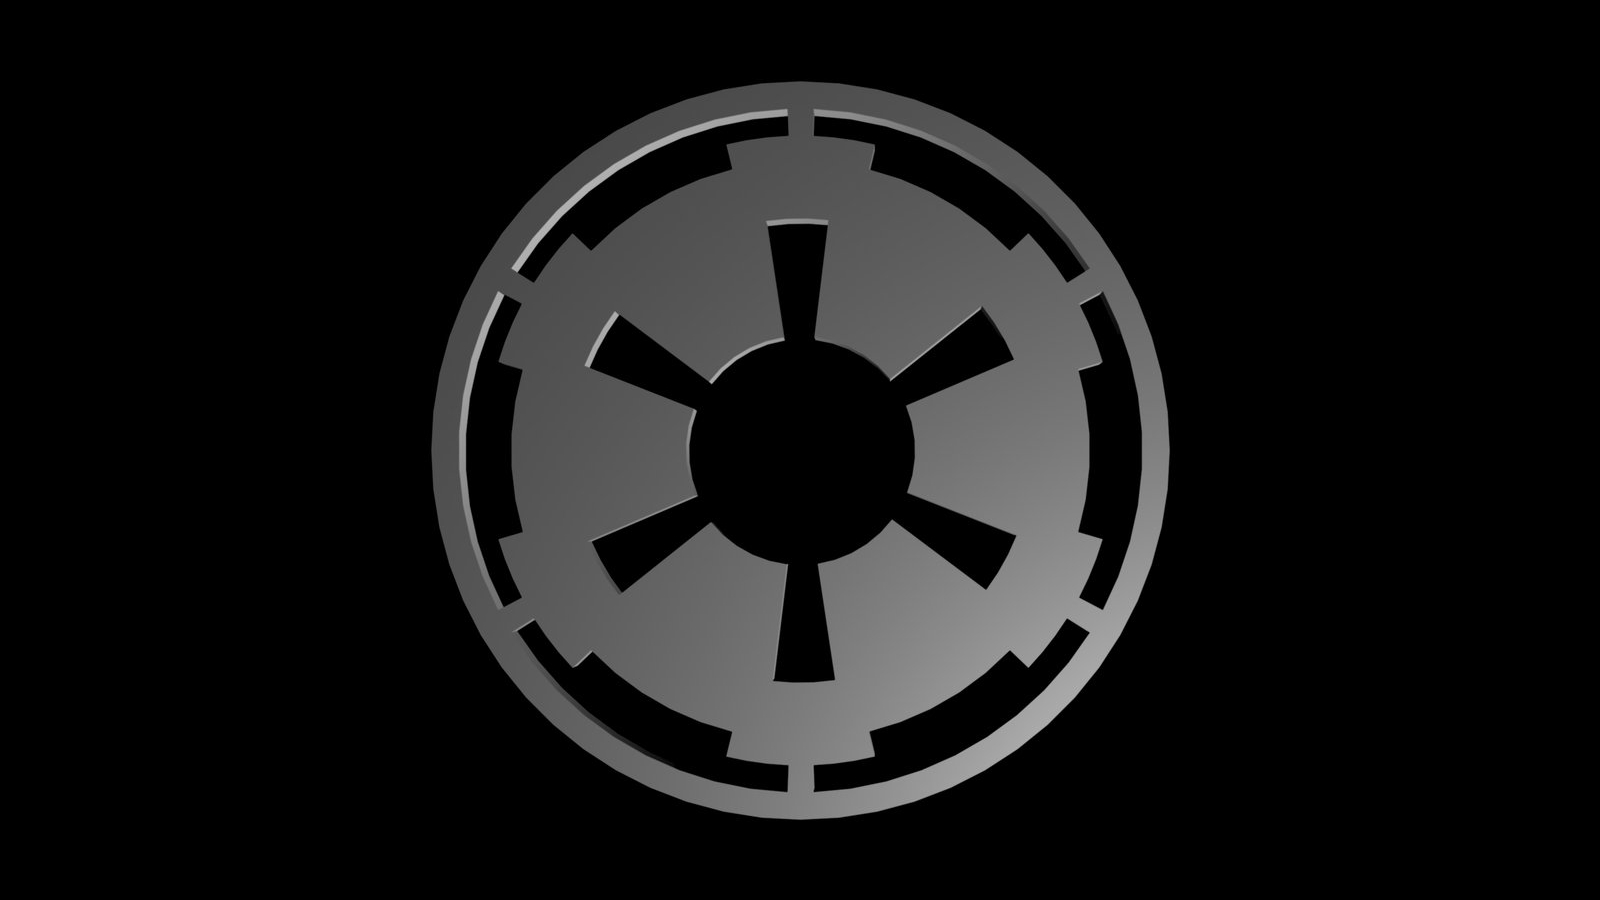 Free Download Star Wars Empire Logo Wallpaper 1600x905 For Your